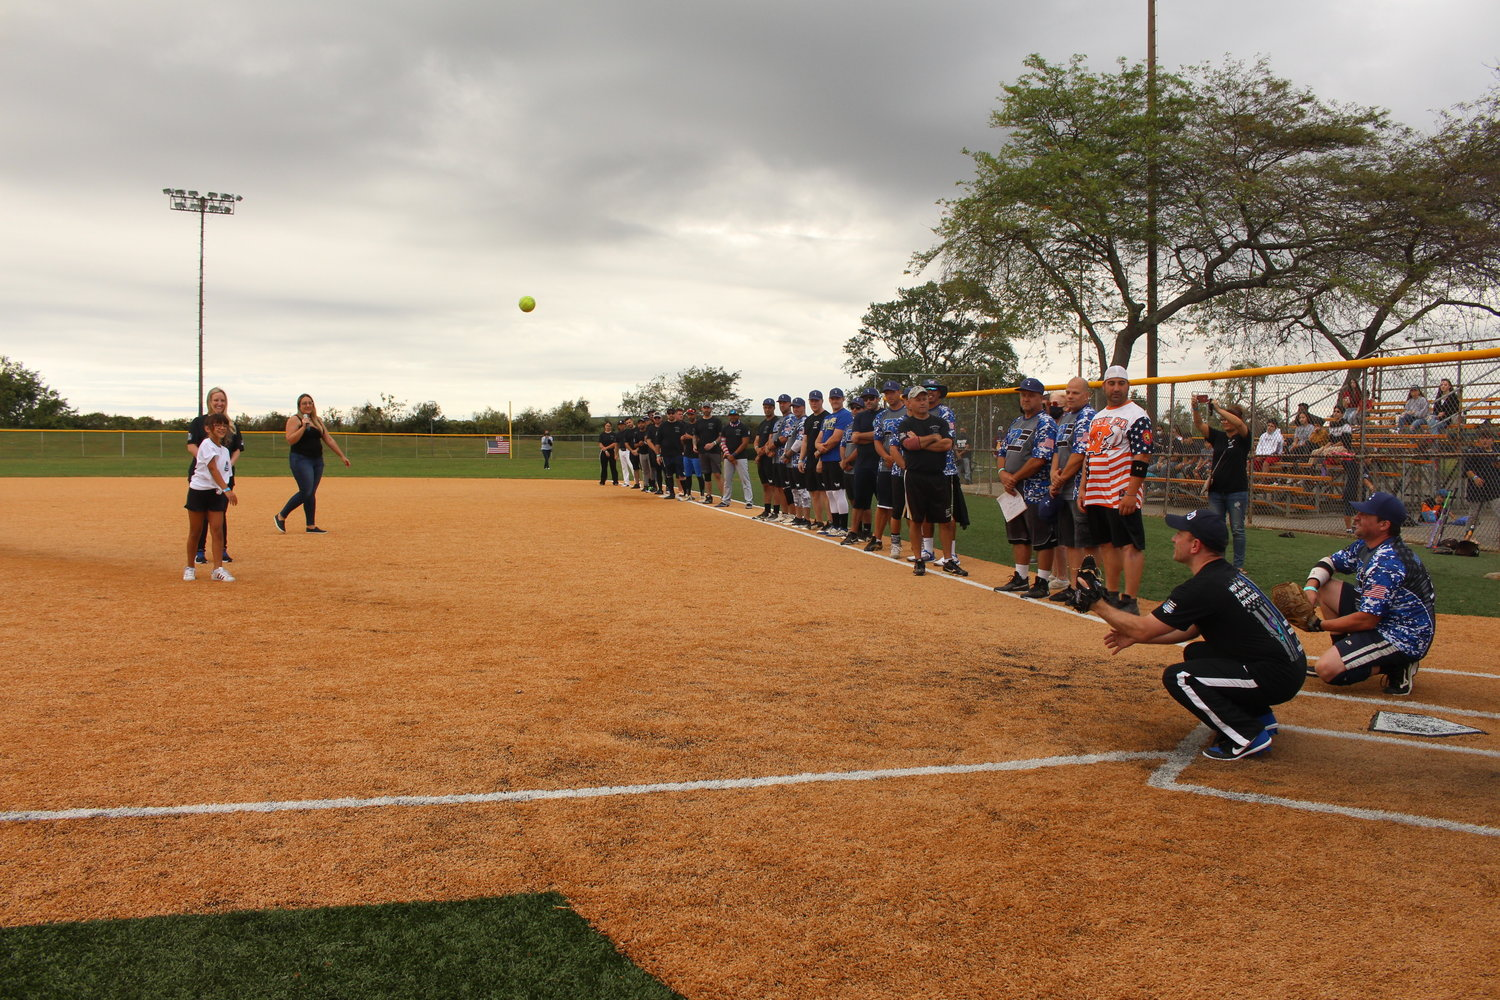 Mila Geraldi, daughter of the late New York City police officer Mike Geraldi, and Kristen Clifford, widow of NCPD officer Steve Clifford, threw out the ceremonial first pitches.